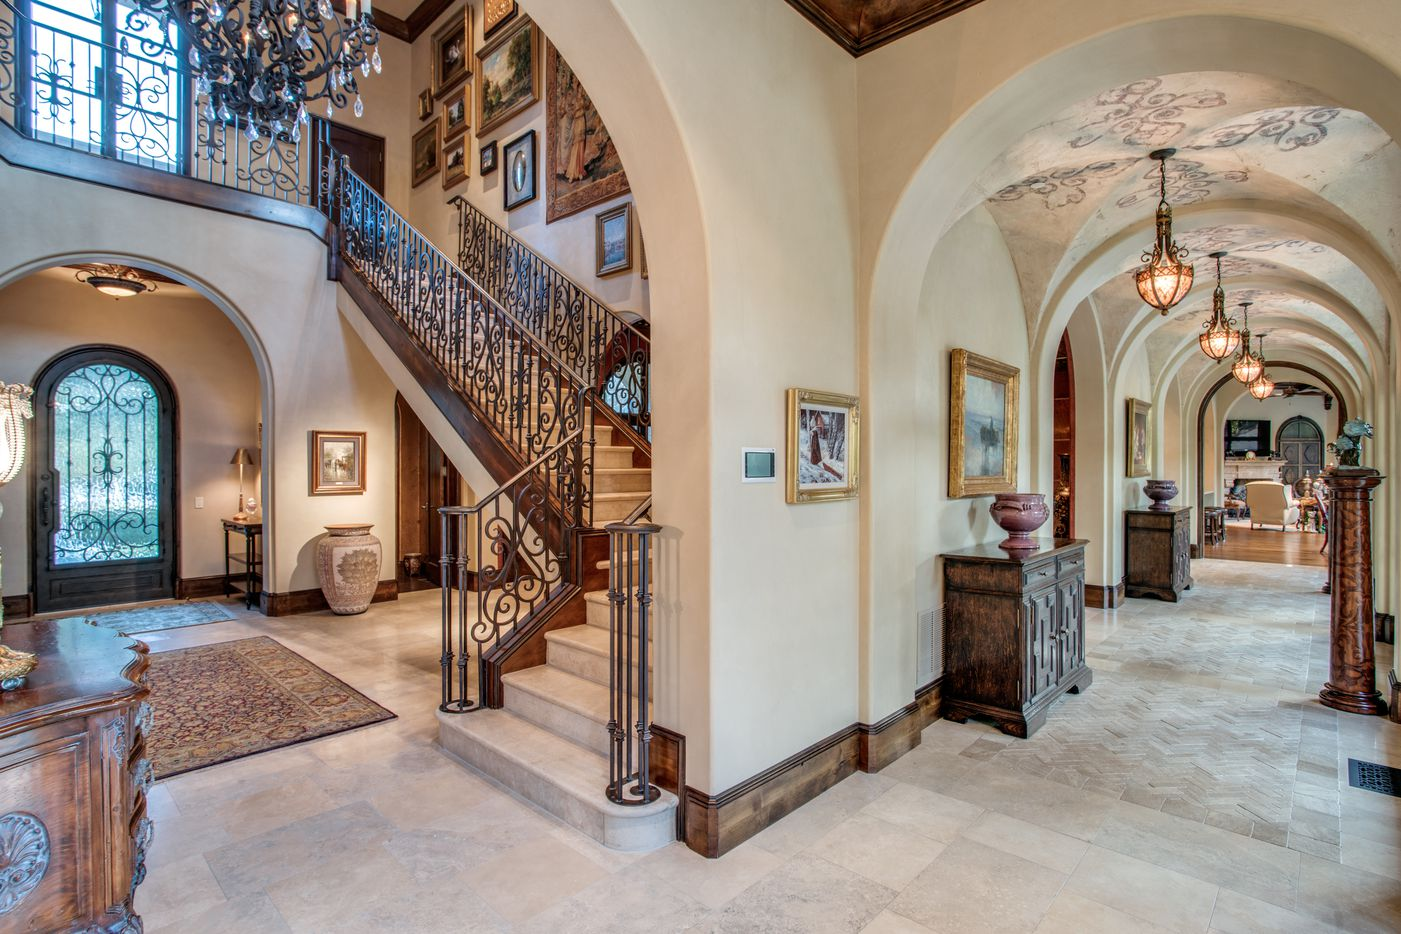 Take a look at the Tuscan style home at 5335 Meaders Lane in Dallas, TX.